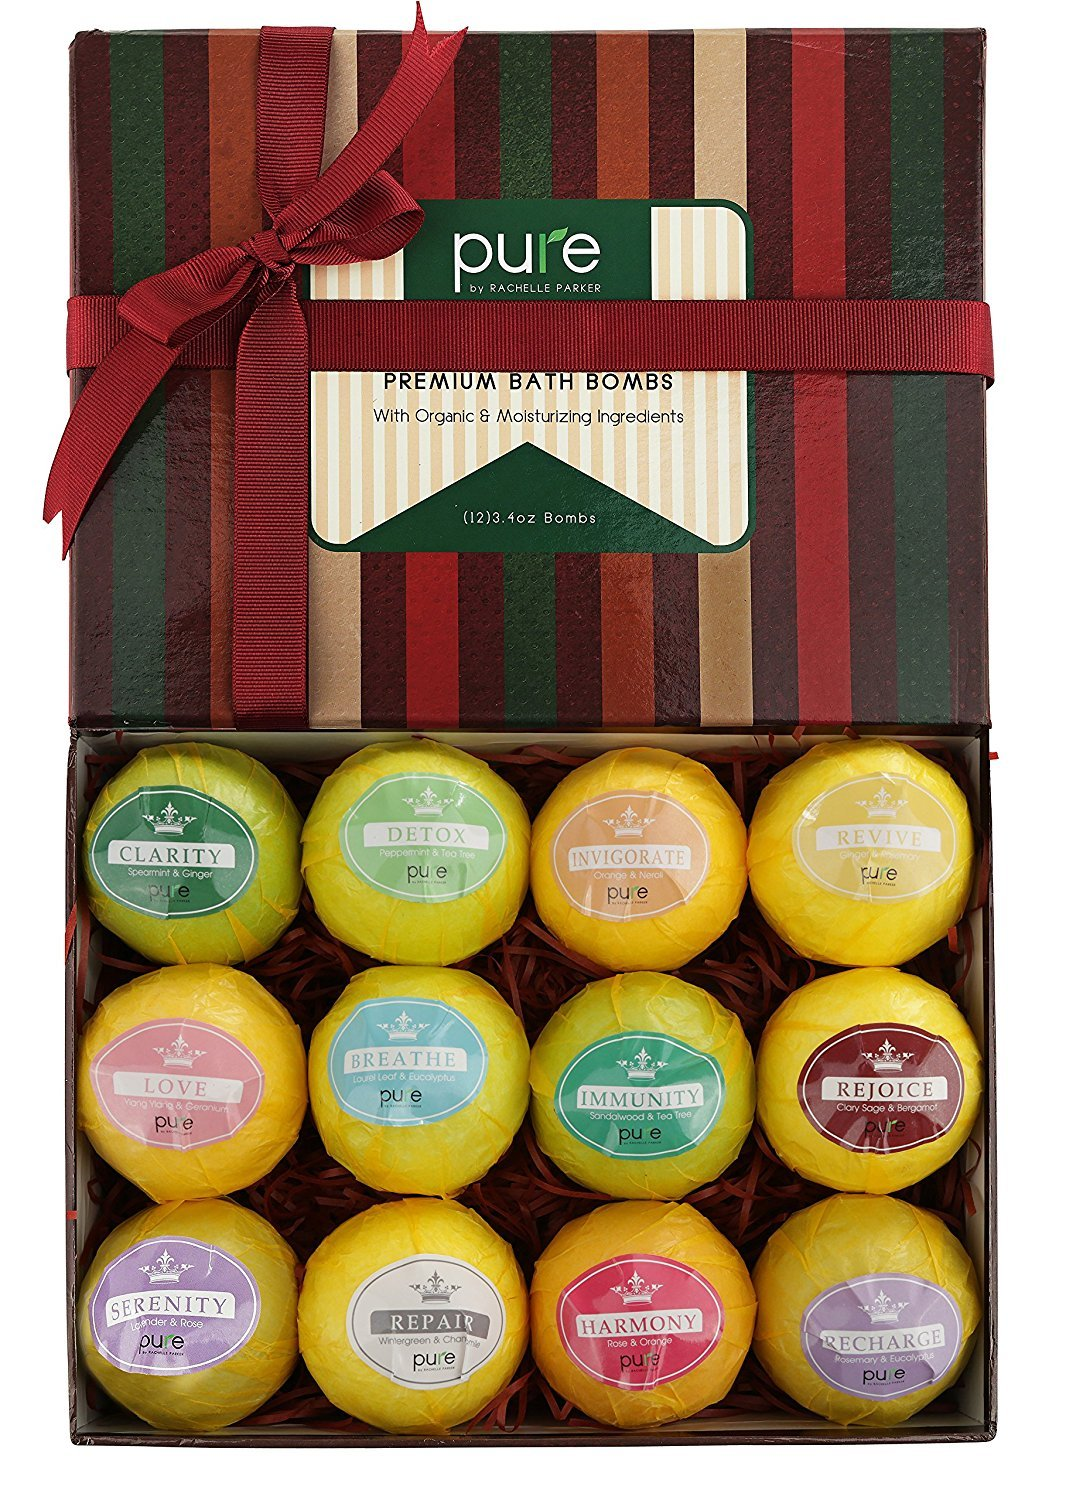 PURE Essential Oil Bath Aromatherapy! 12 Large Bath Bombs. Super-Sized Natural Bath Fizzers with Natural Ingredients, Bath Bombs Gift Kit Spa Gift Box